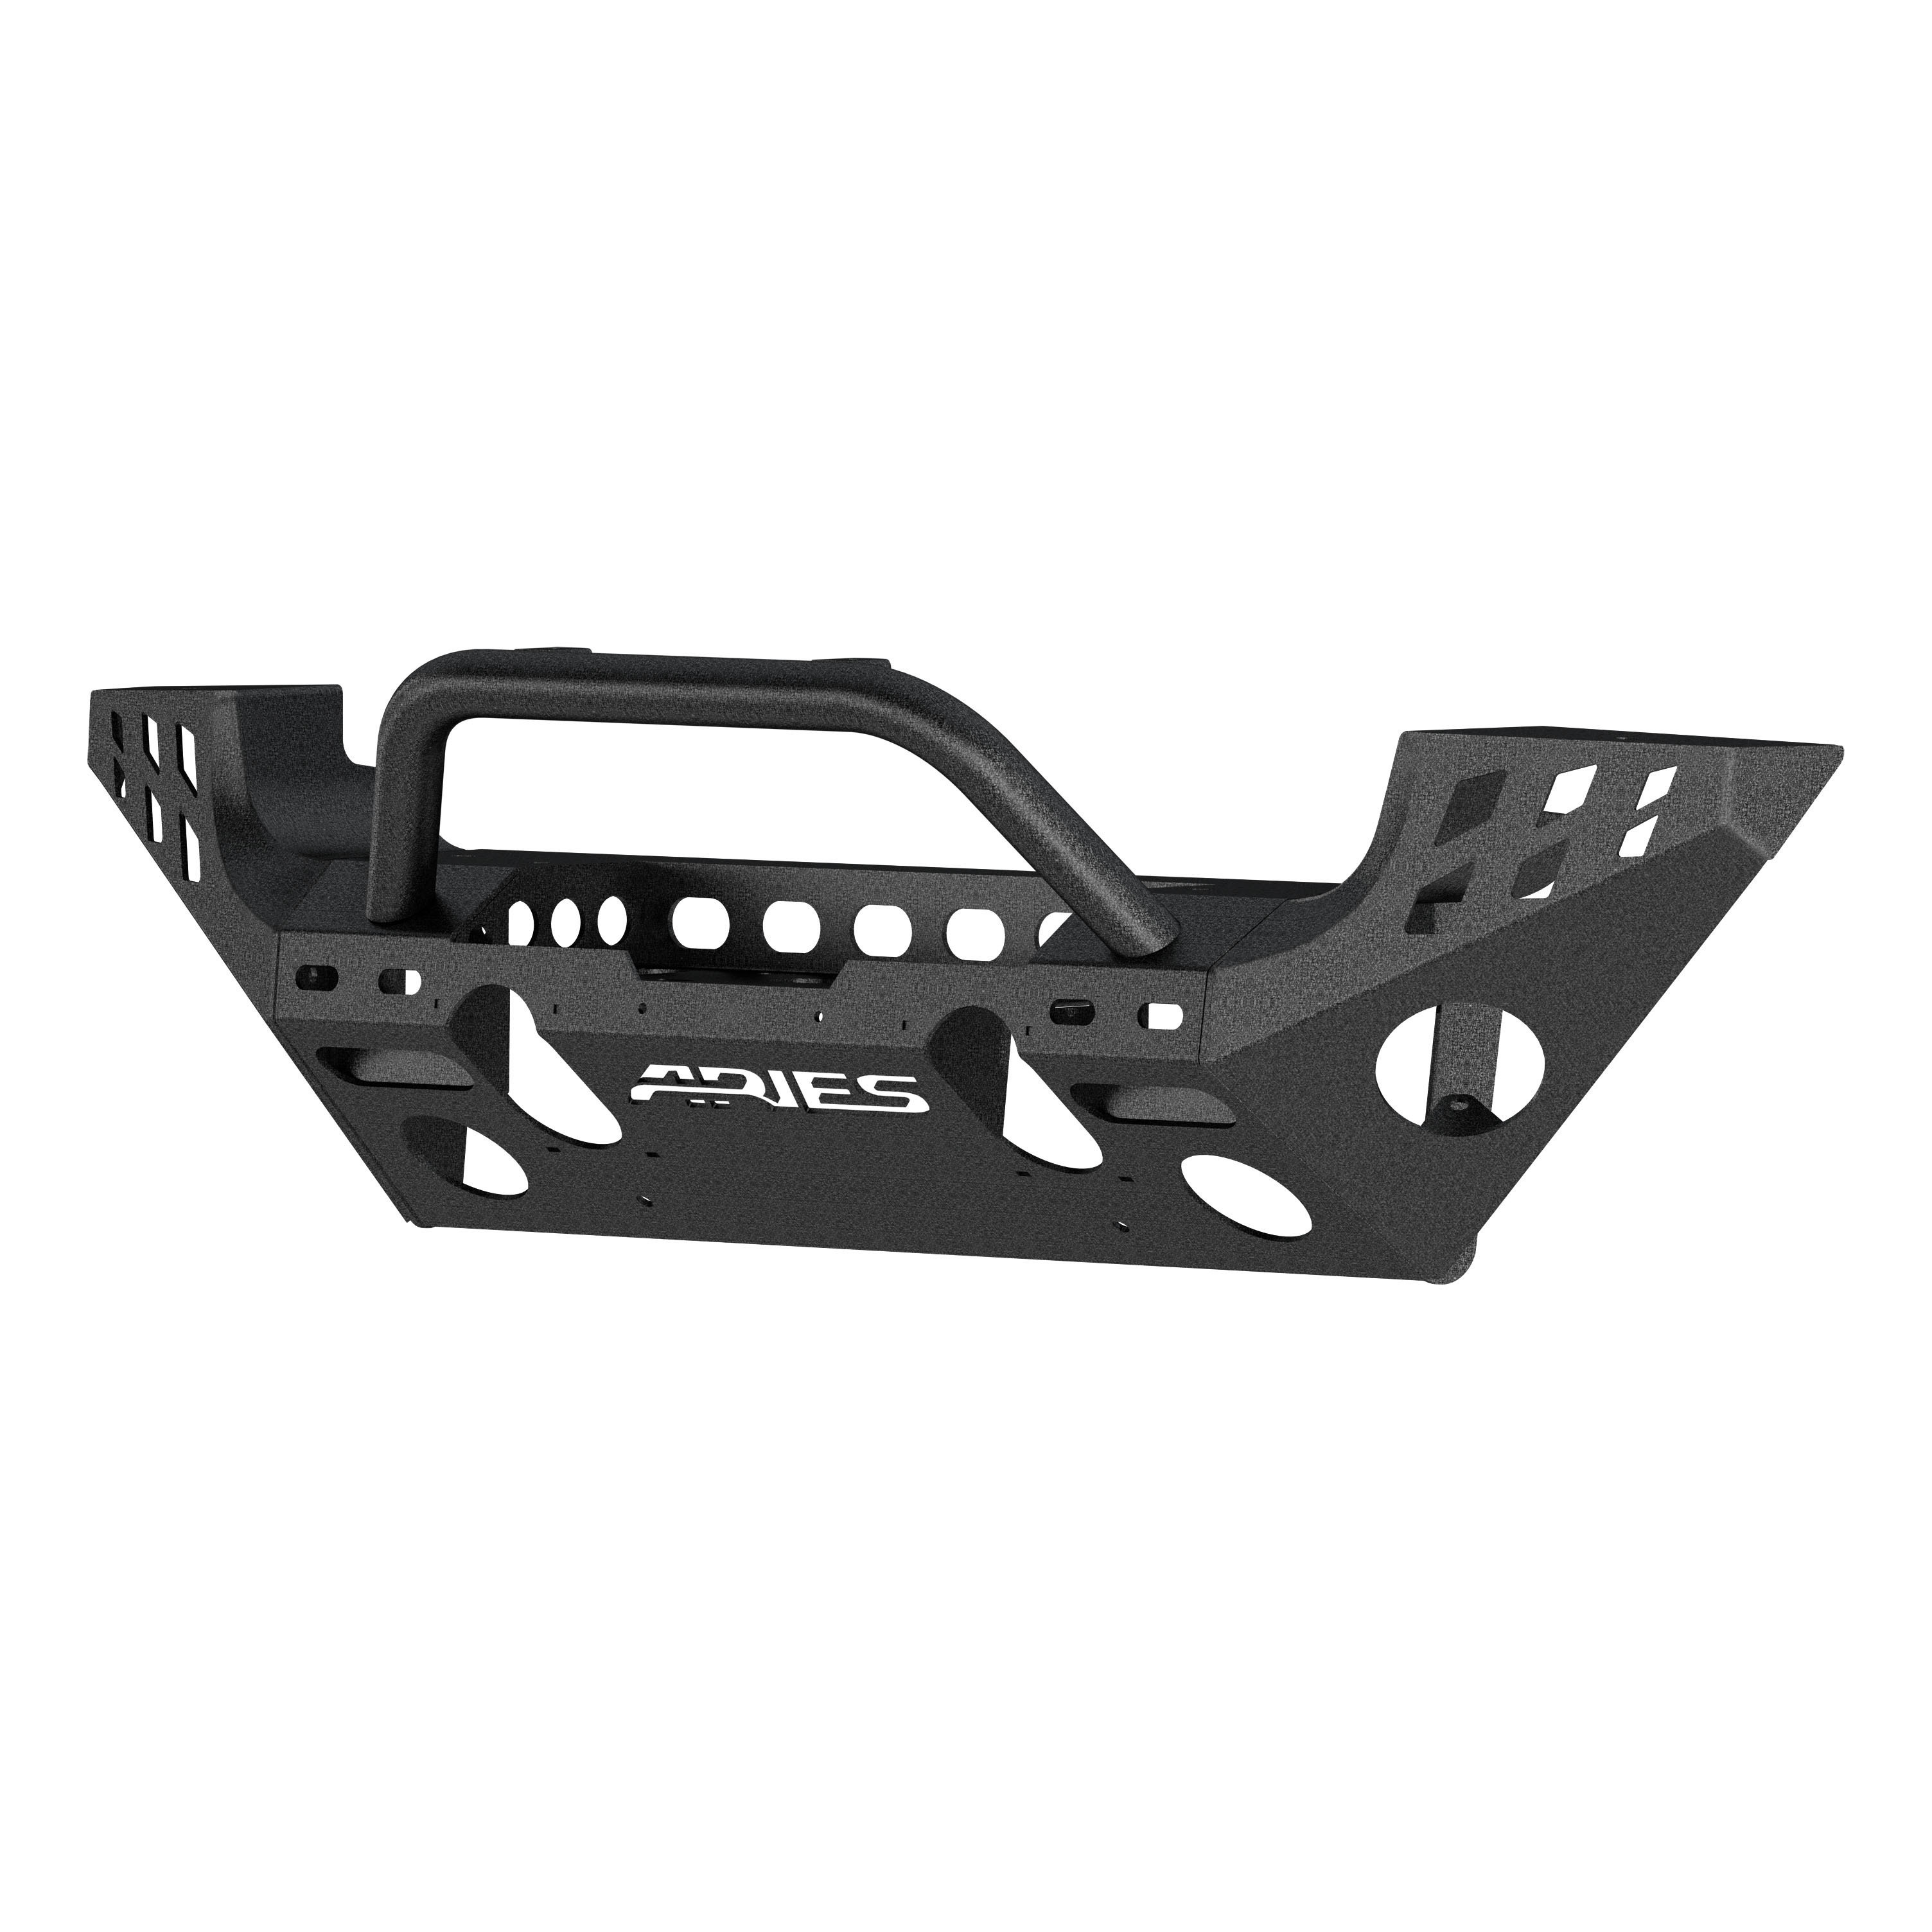 TrailChaser Jeep Front Bumper (Option 9)